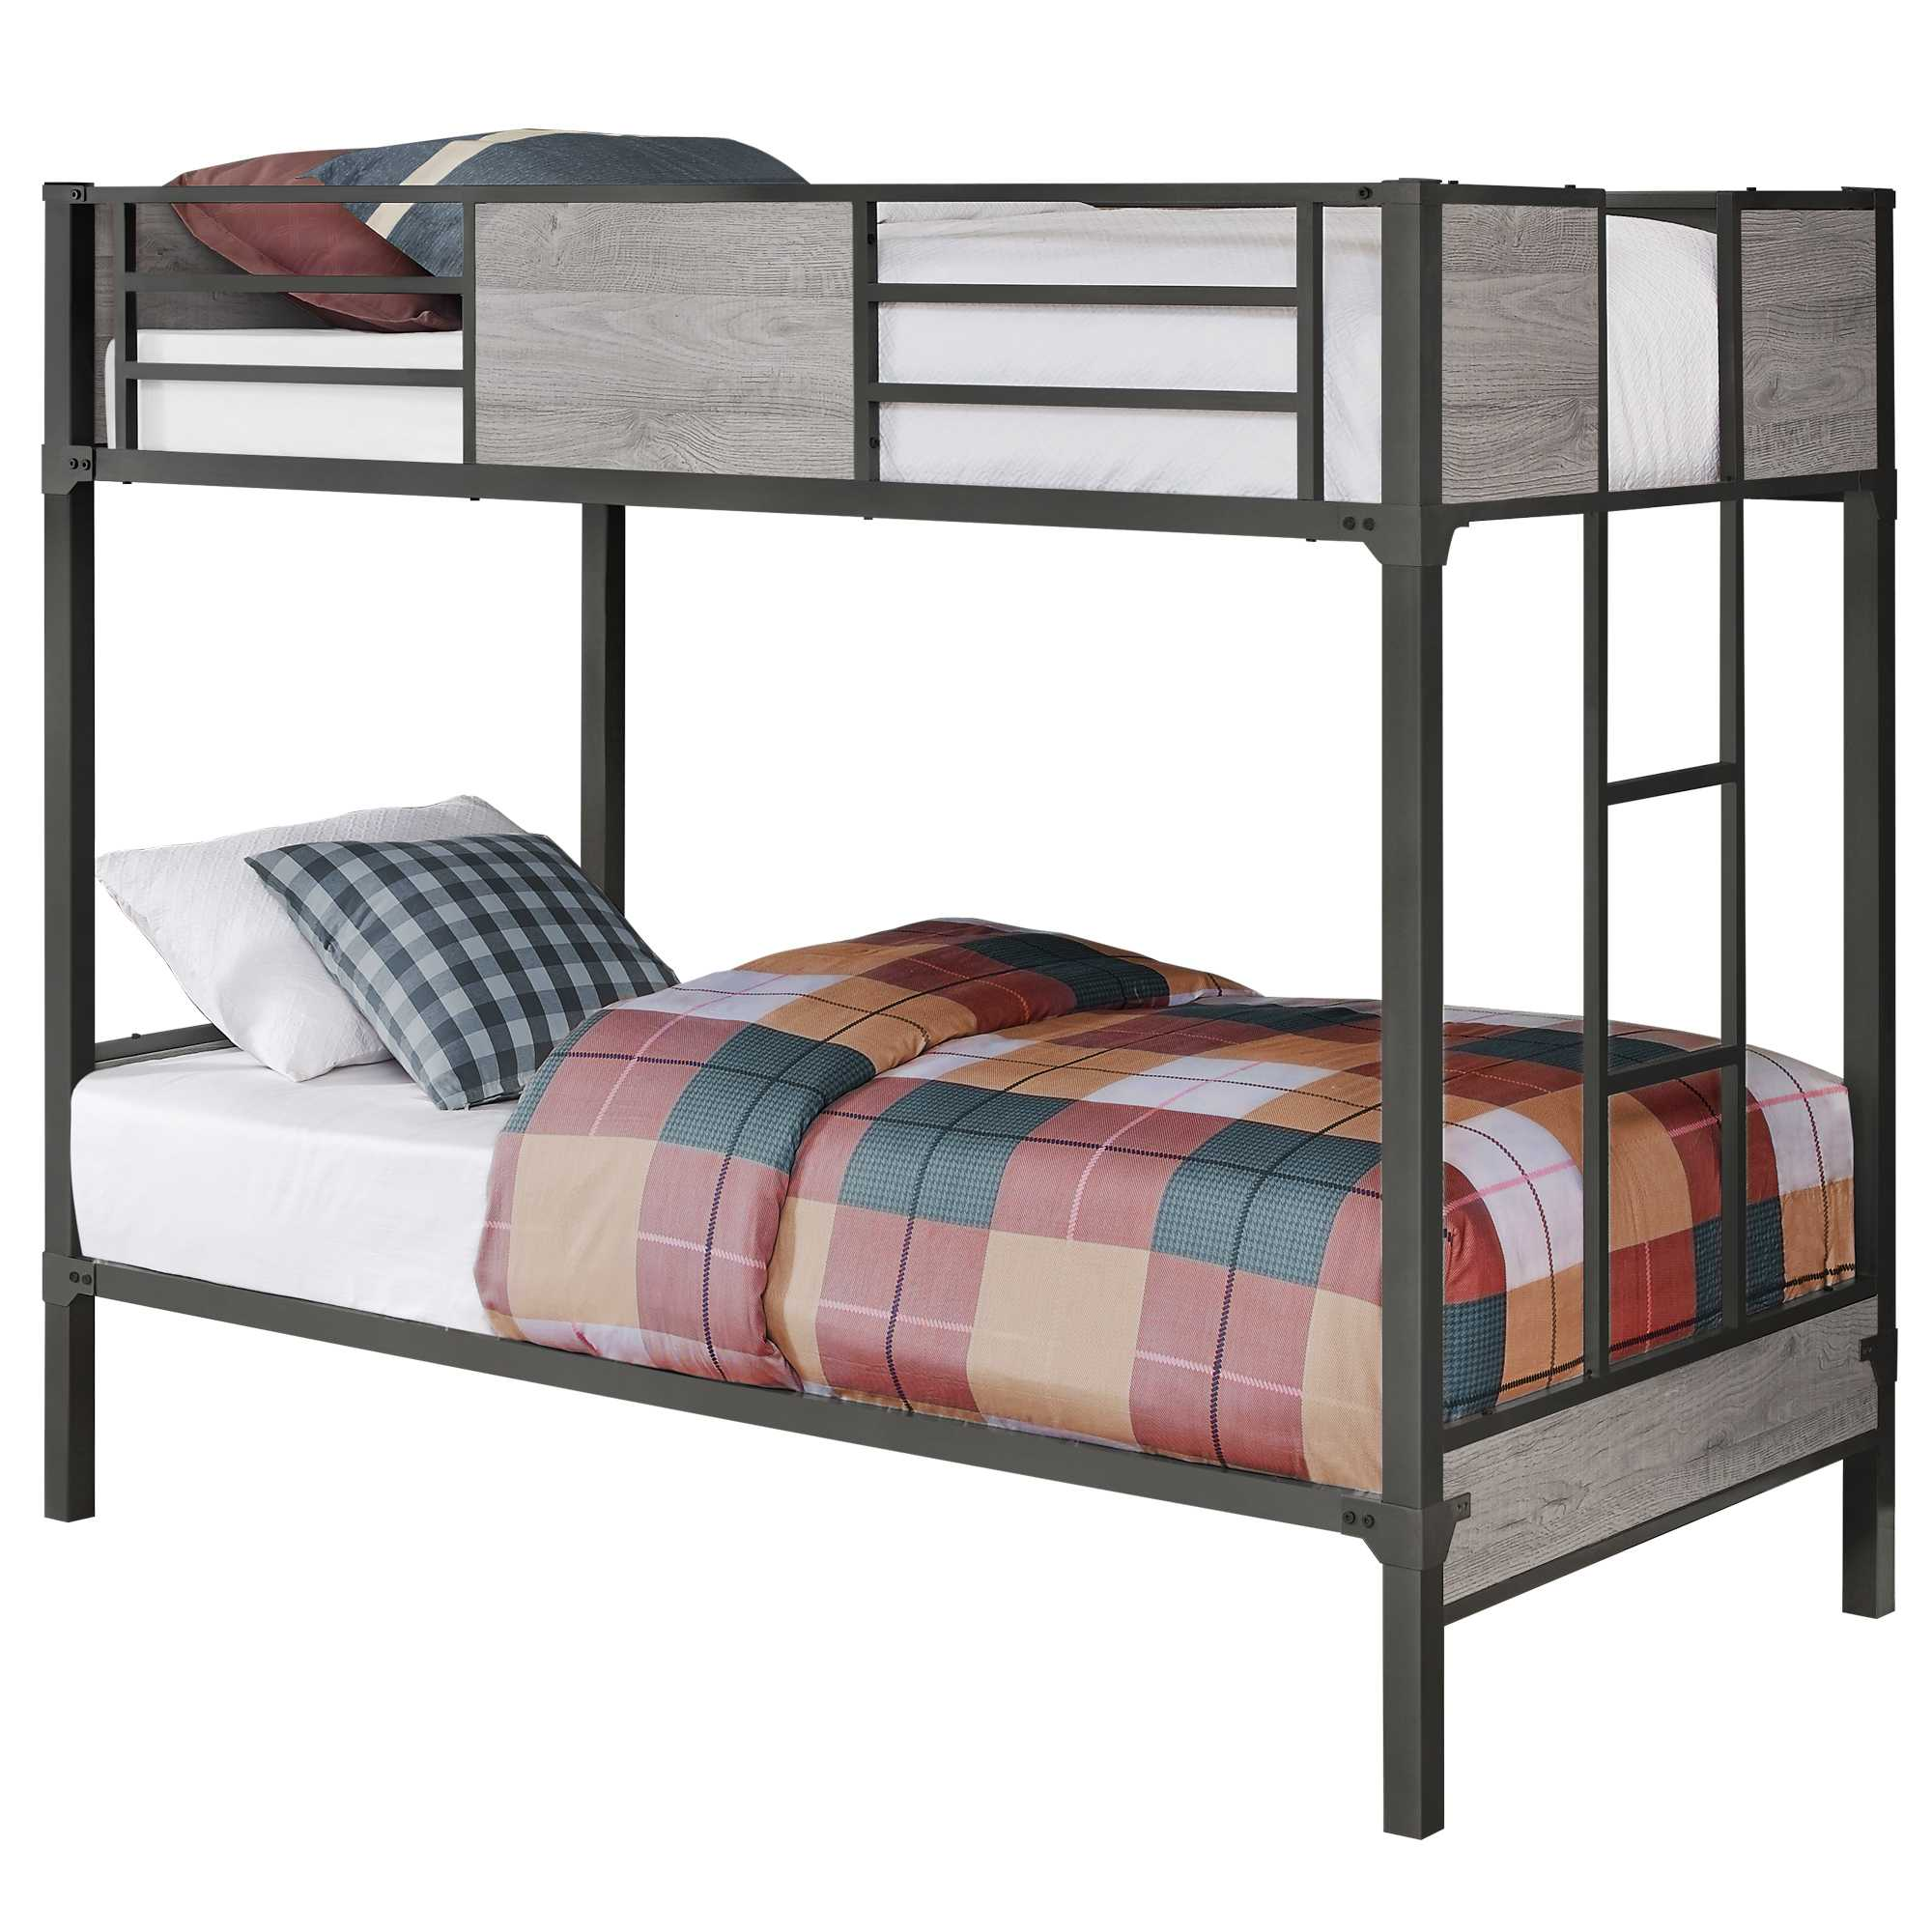 "41"" x 78'.5"" x 64'.5"" Grey/Dark Grey, Metal - Bunk Bed Twin Size"